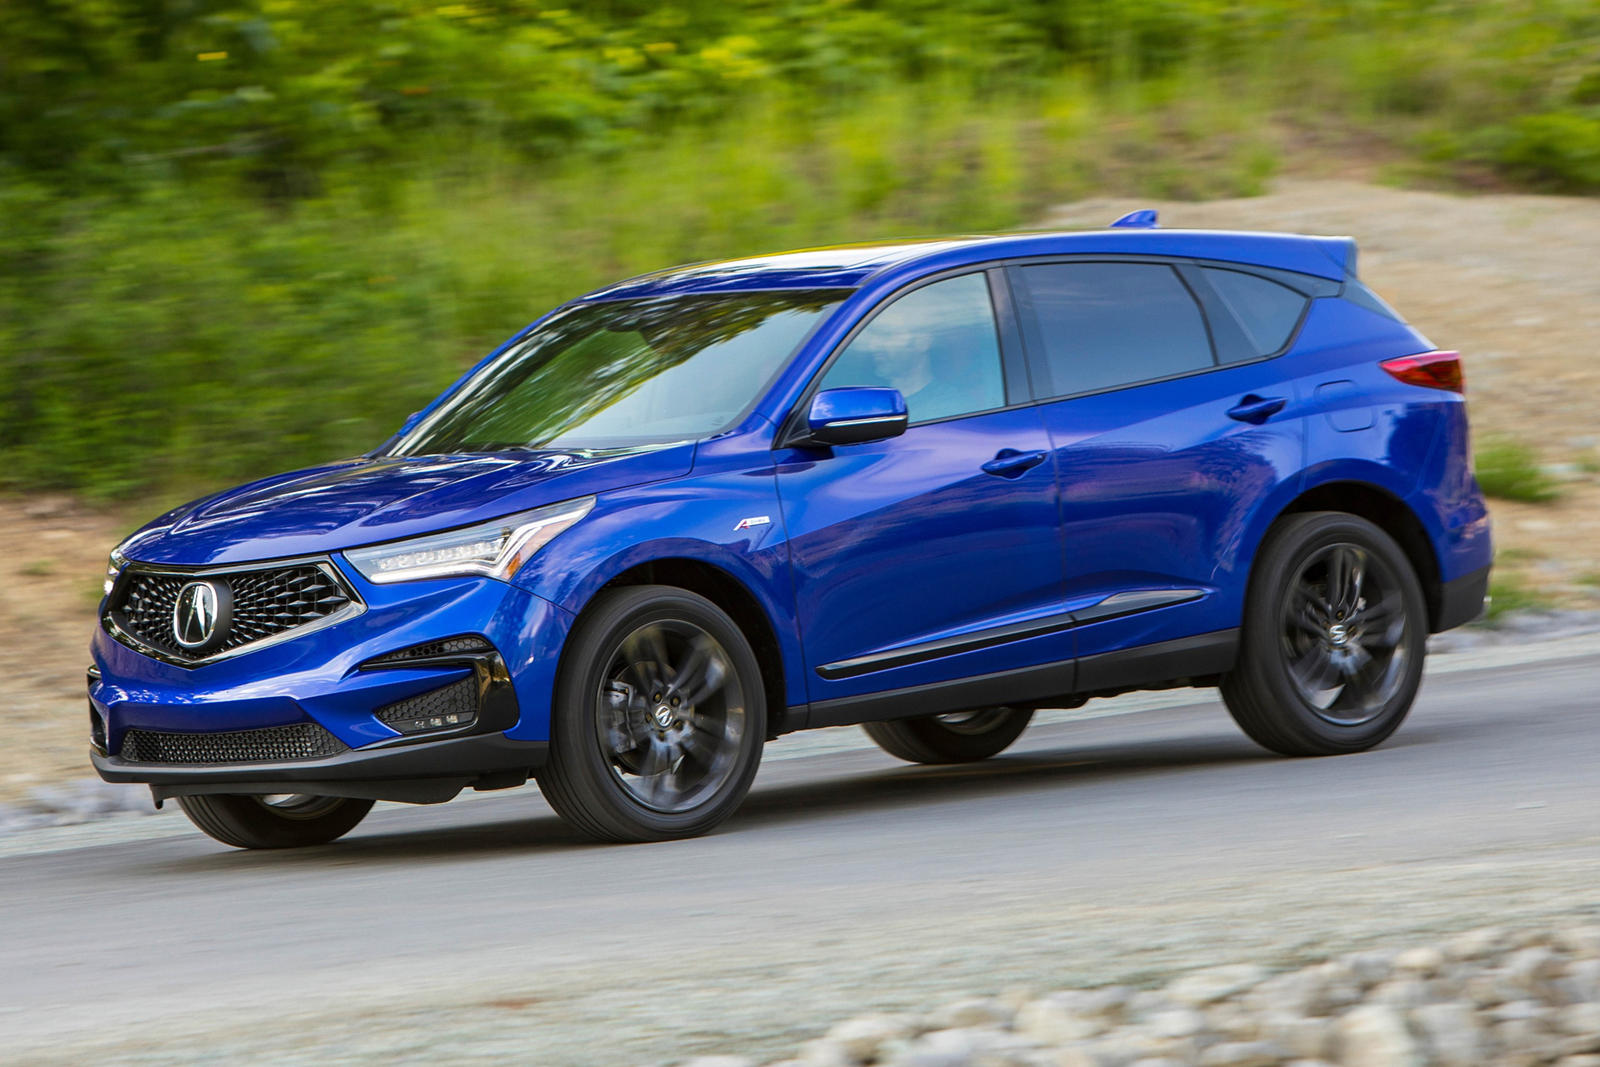 2020 Acura RDX: Changes, Specs, Price >> 2020 Acura Rdx Pricing Announced Carbuzz